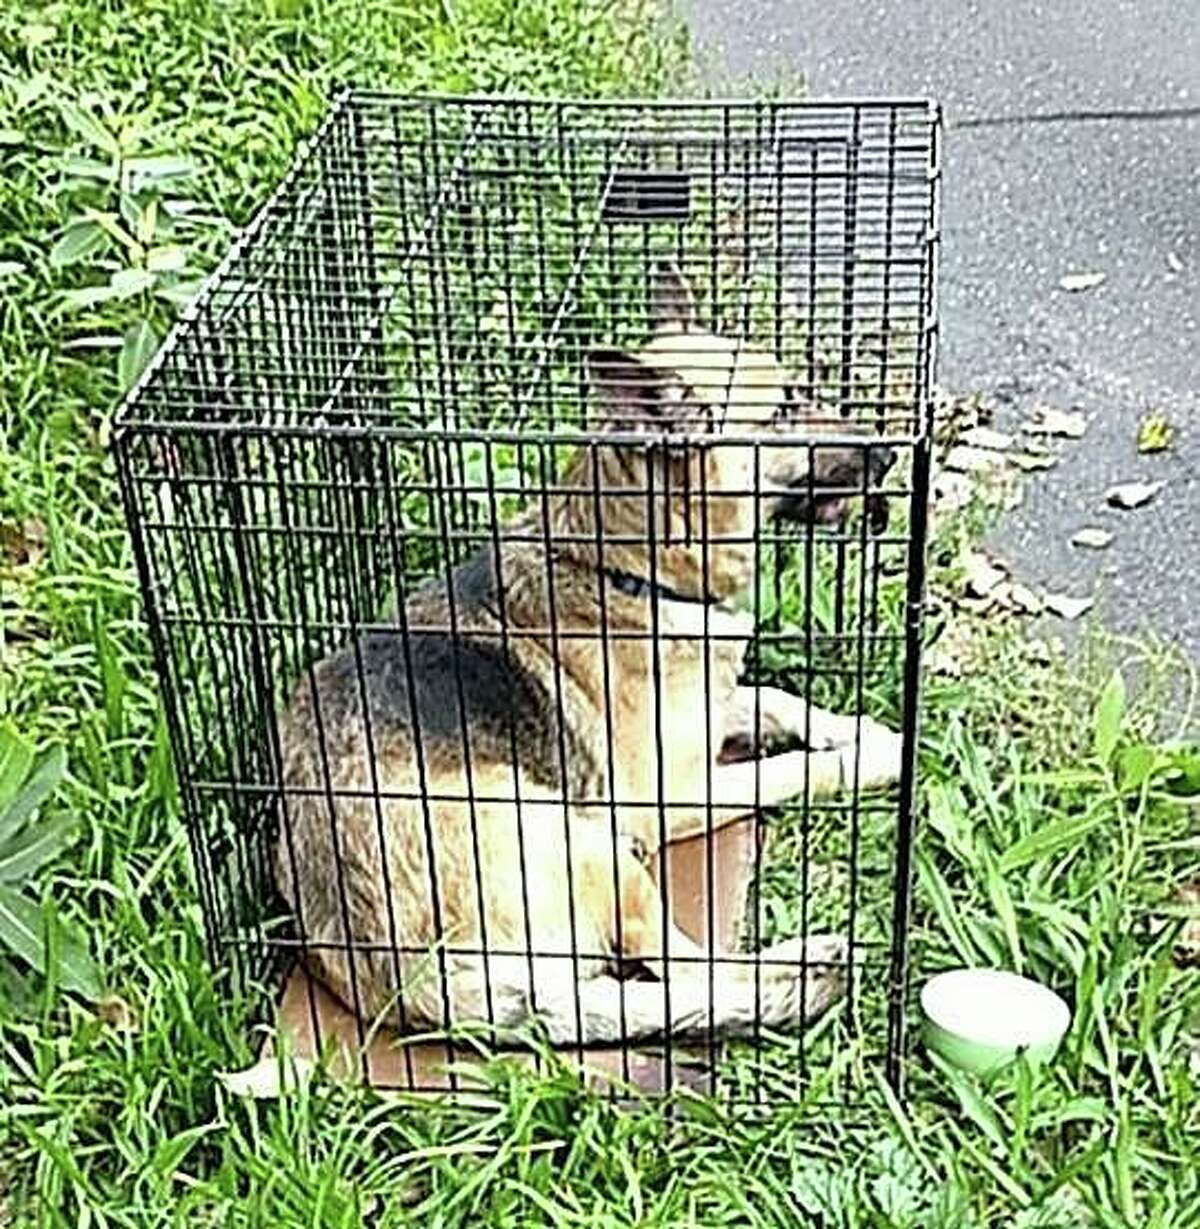 Police are looking for the person who left an adult male German shepherd in a crate down an embankment over the weekend. The dog was found suffering from dehydration but appears to be otherwise healthy, police said.